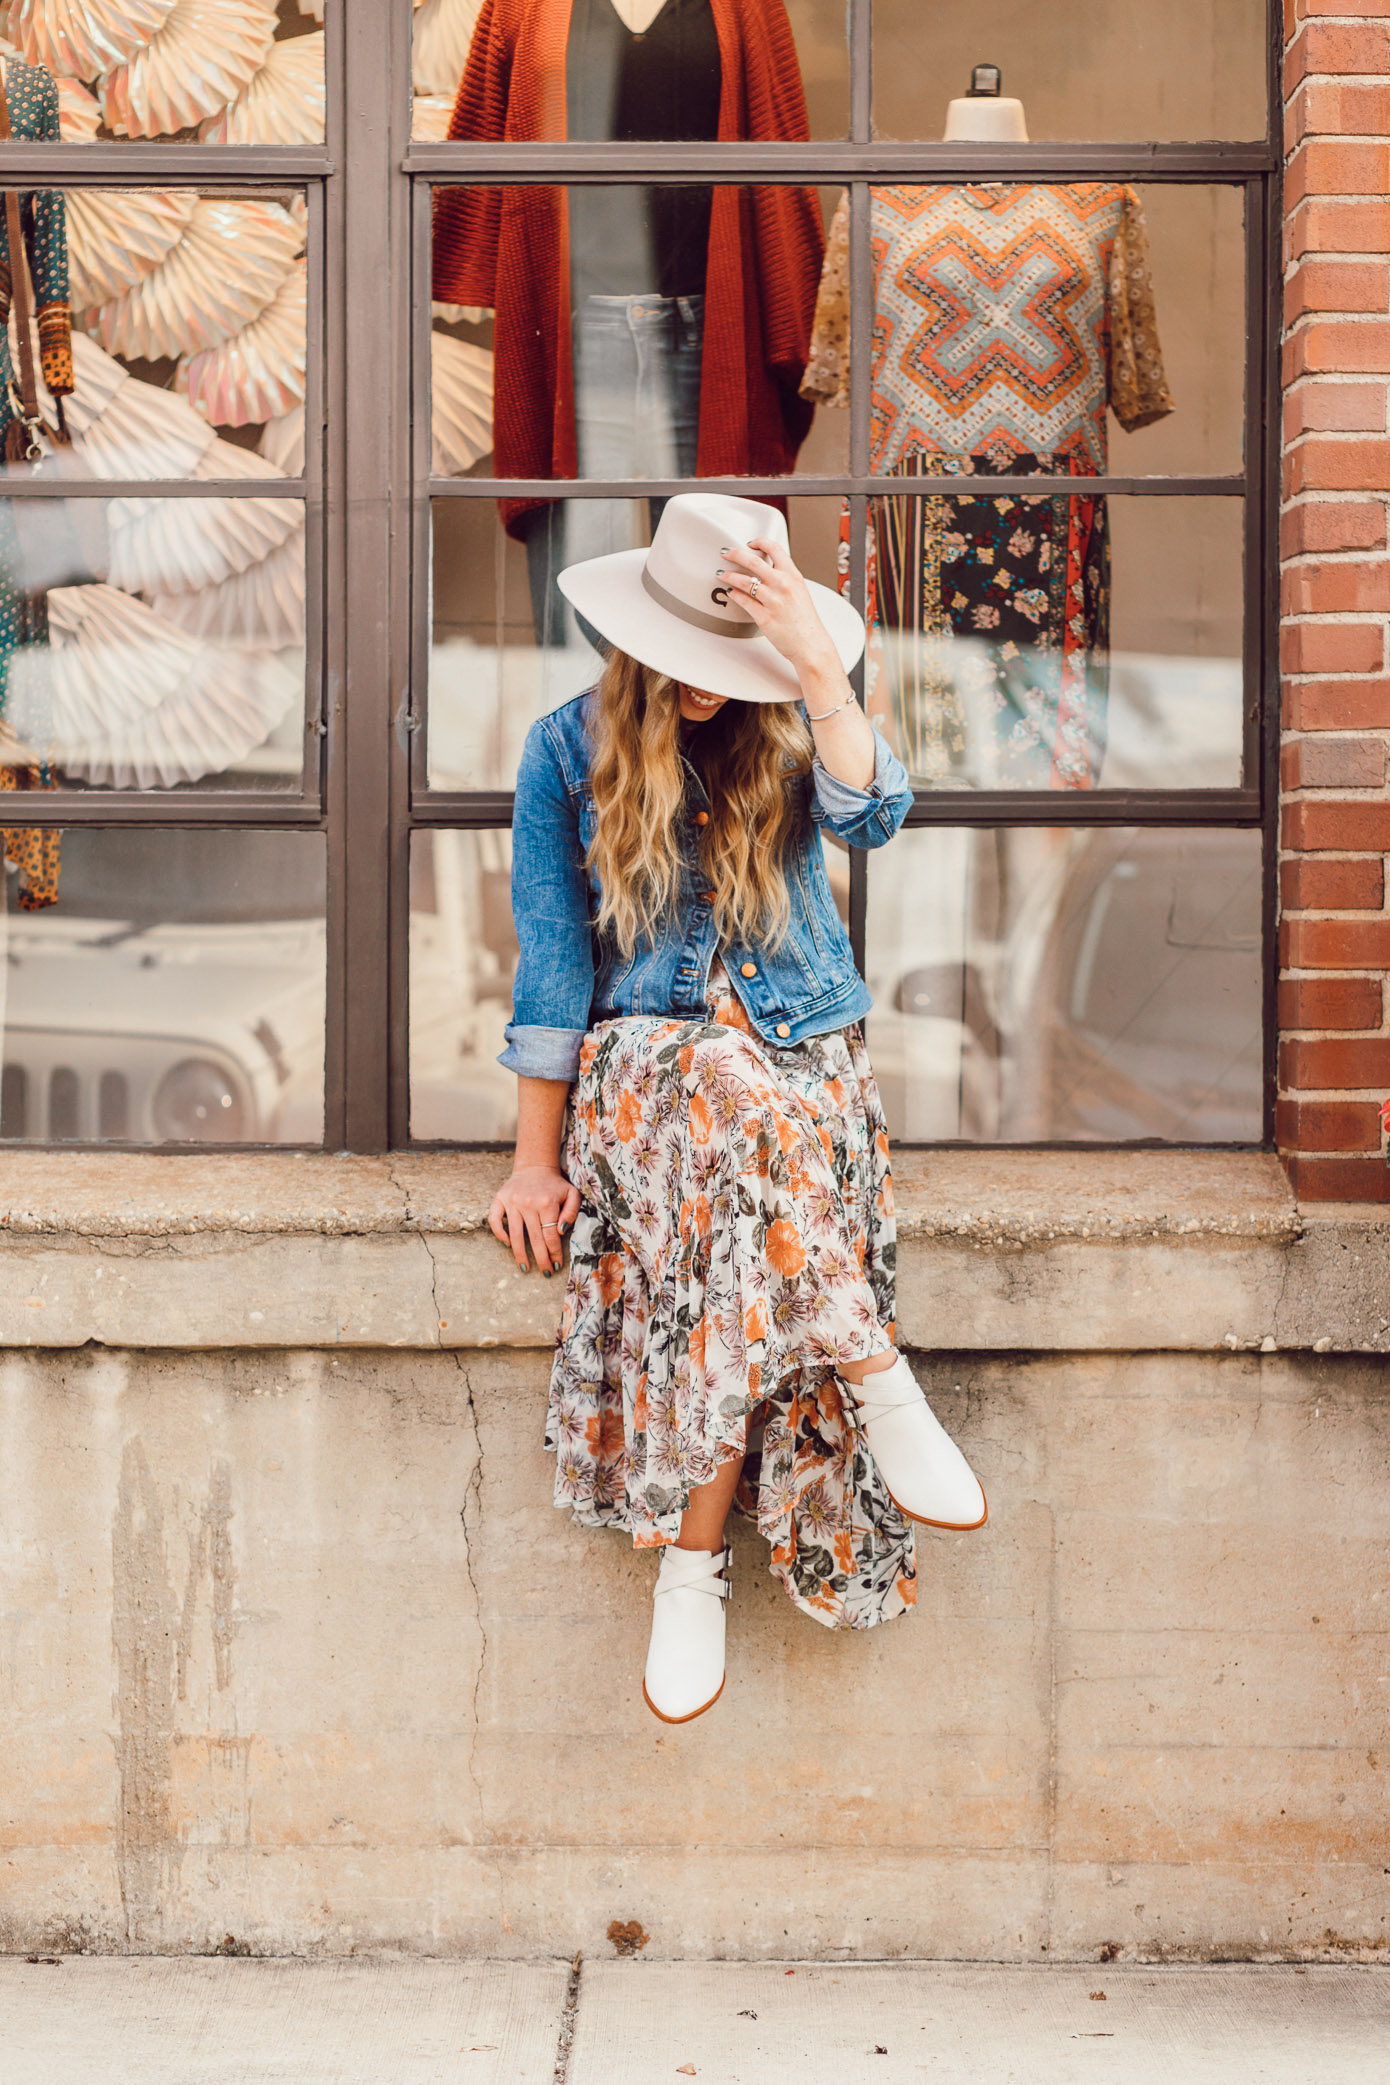 Felt Cowboy Hat, Fall Floral Midi Dress, Frye Ray Western Shootie Ankle Bootie | How to Style the Western Trend for Fall 2018 featured on Louella Reese Life & Style Blog